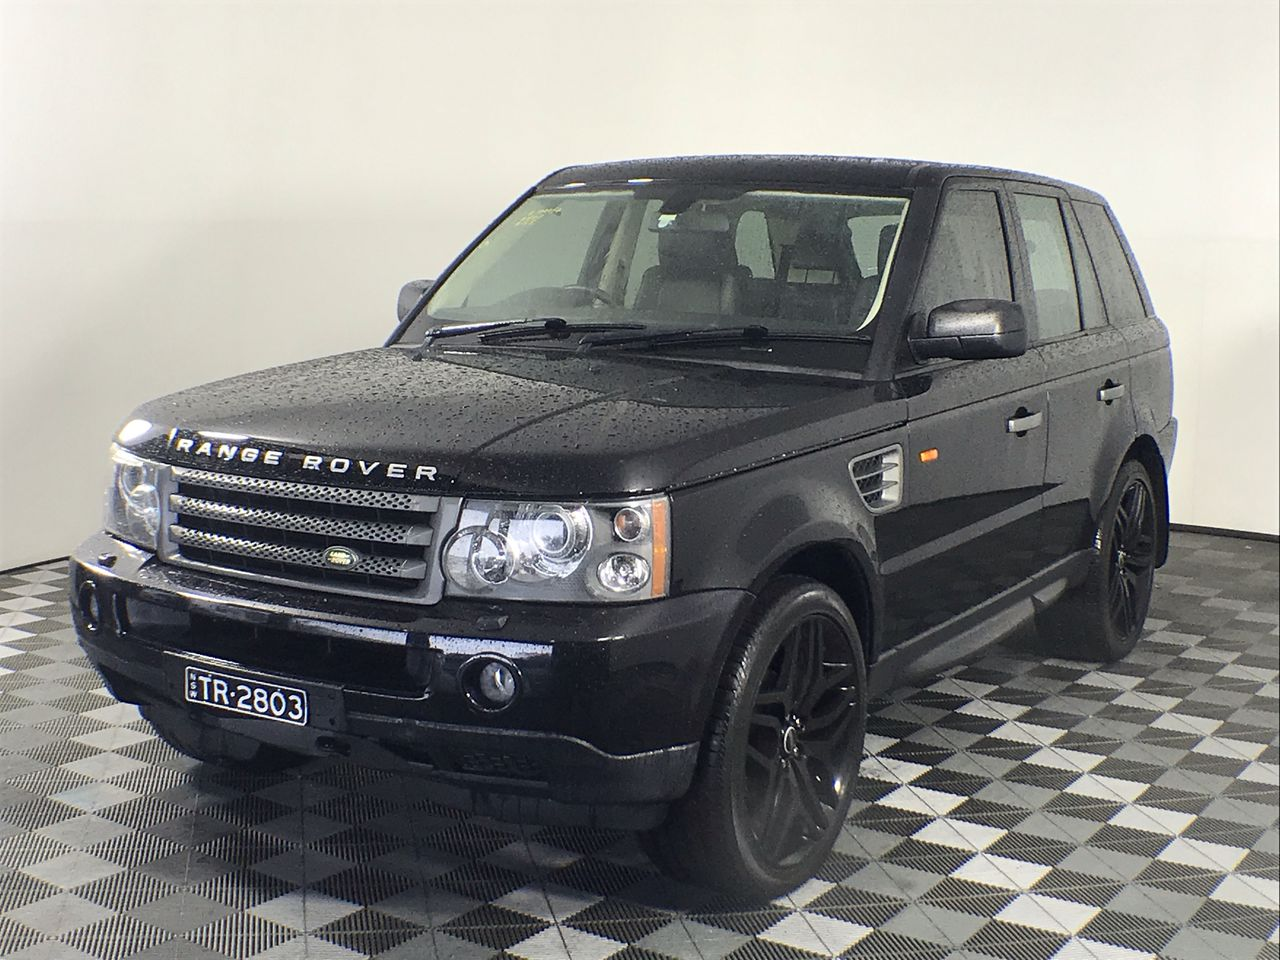 2008 Land Rover Range Rover Sport TDV6 Turbo Diesel Automatic Wagon